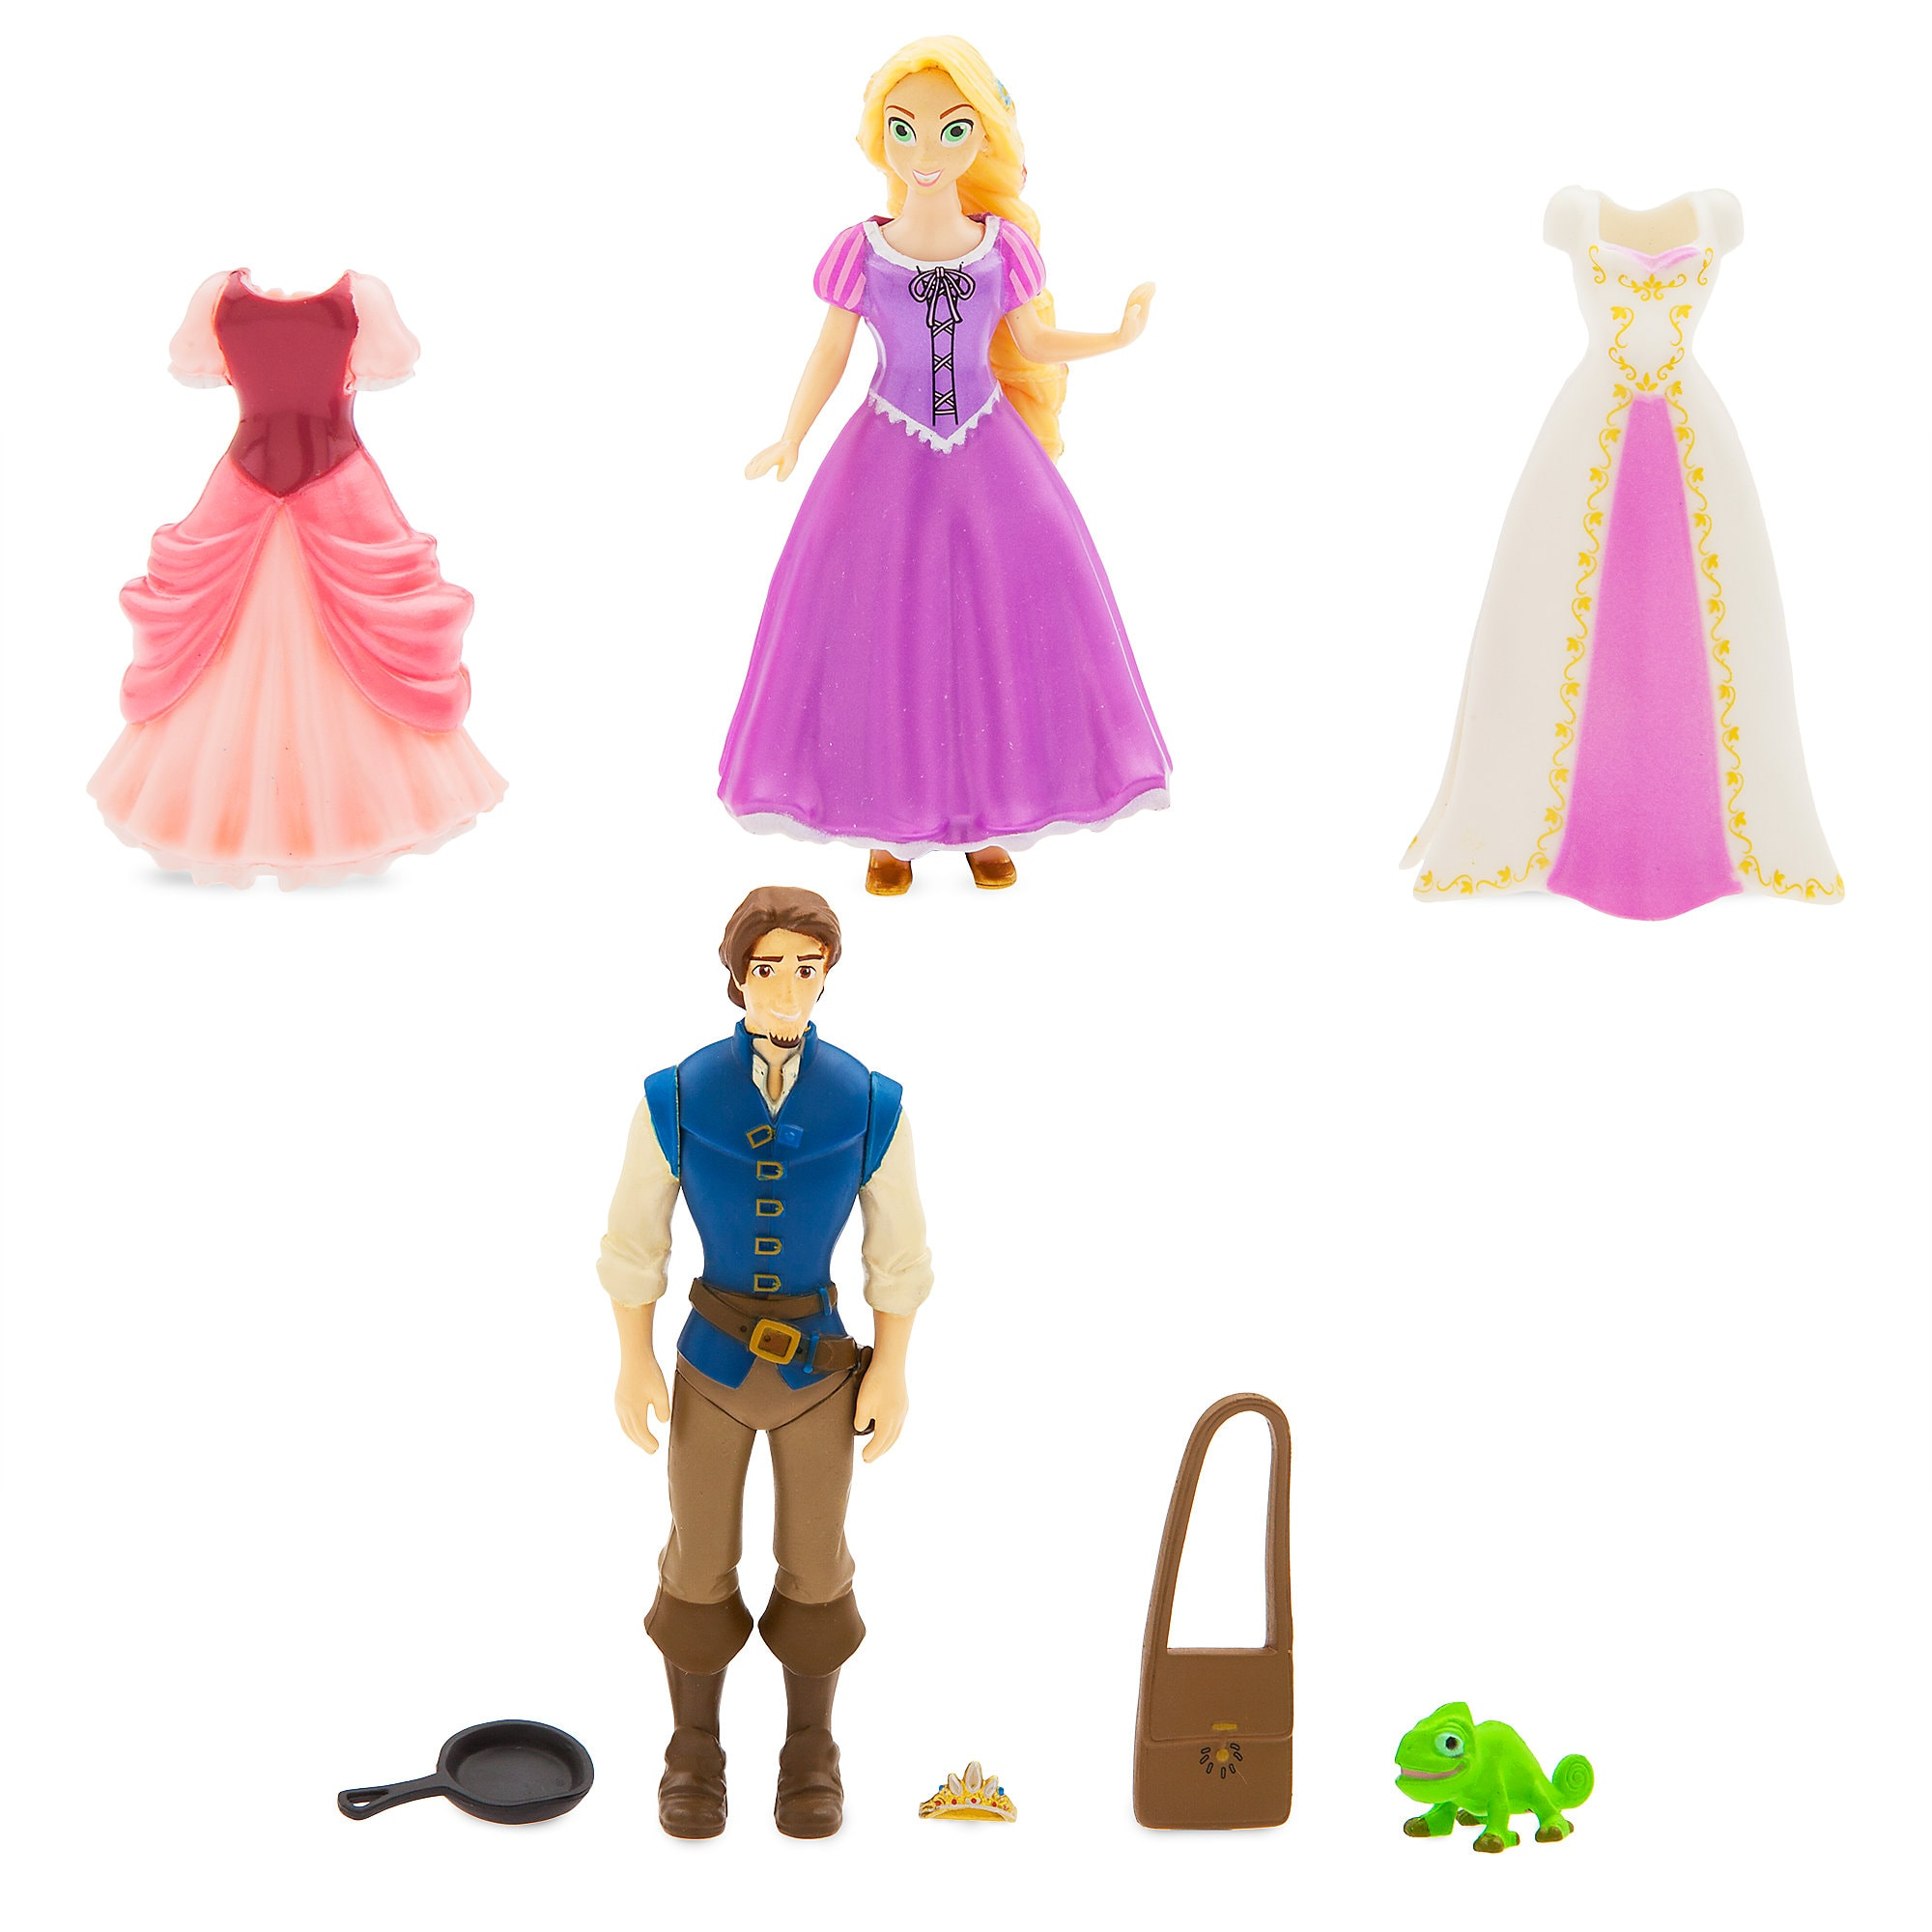 Rapunzel Dress Up Figure Set